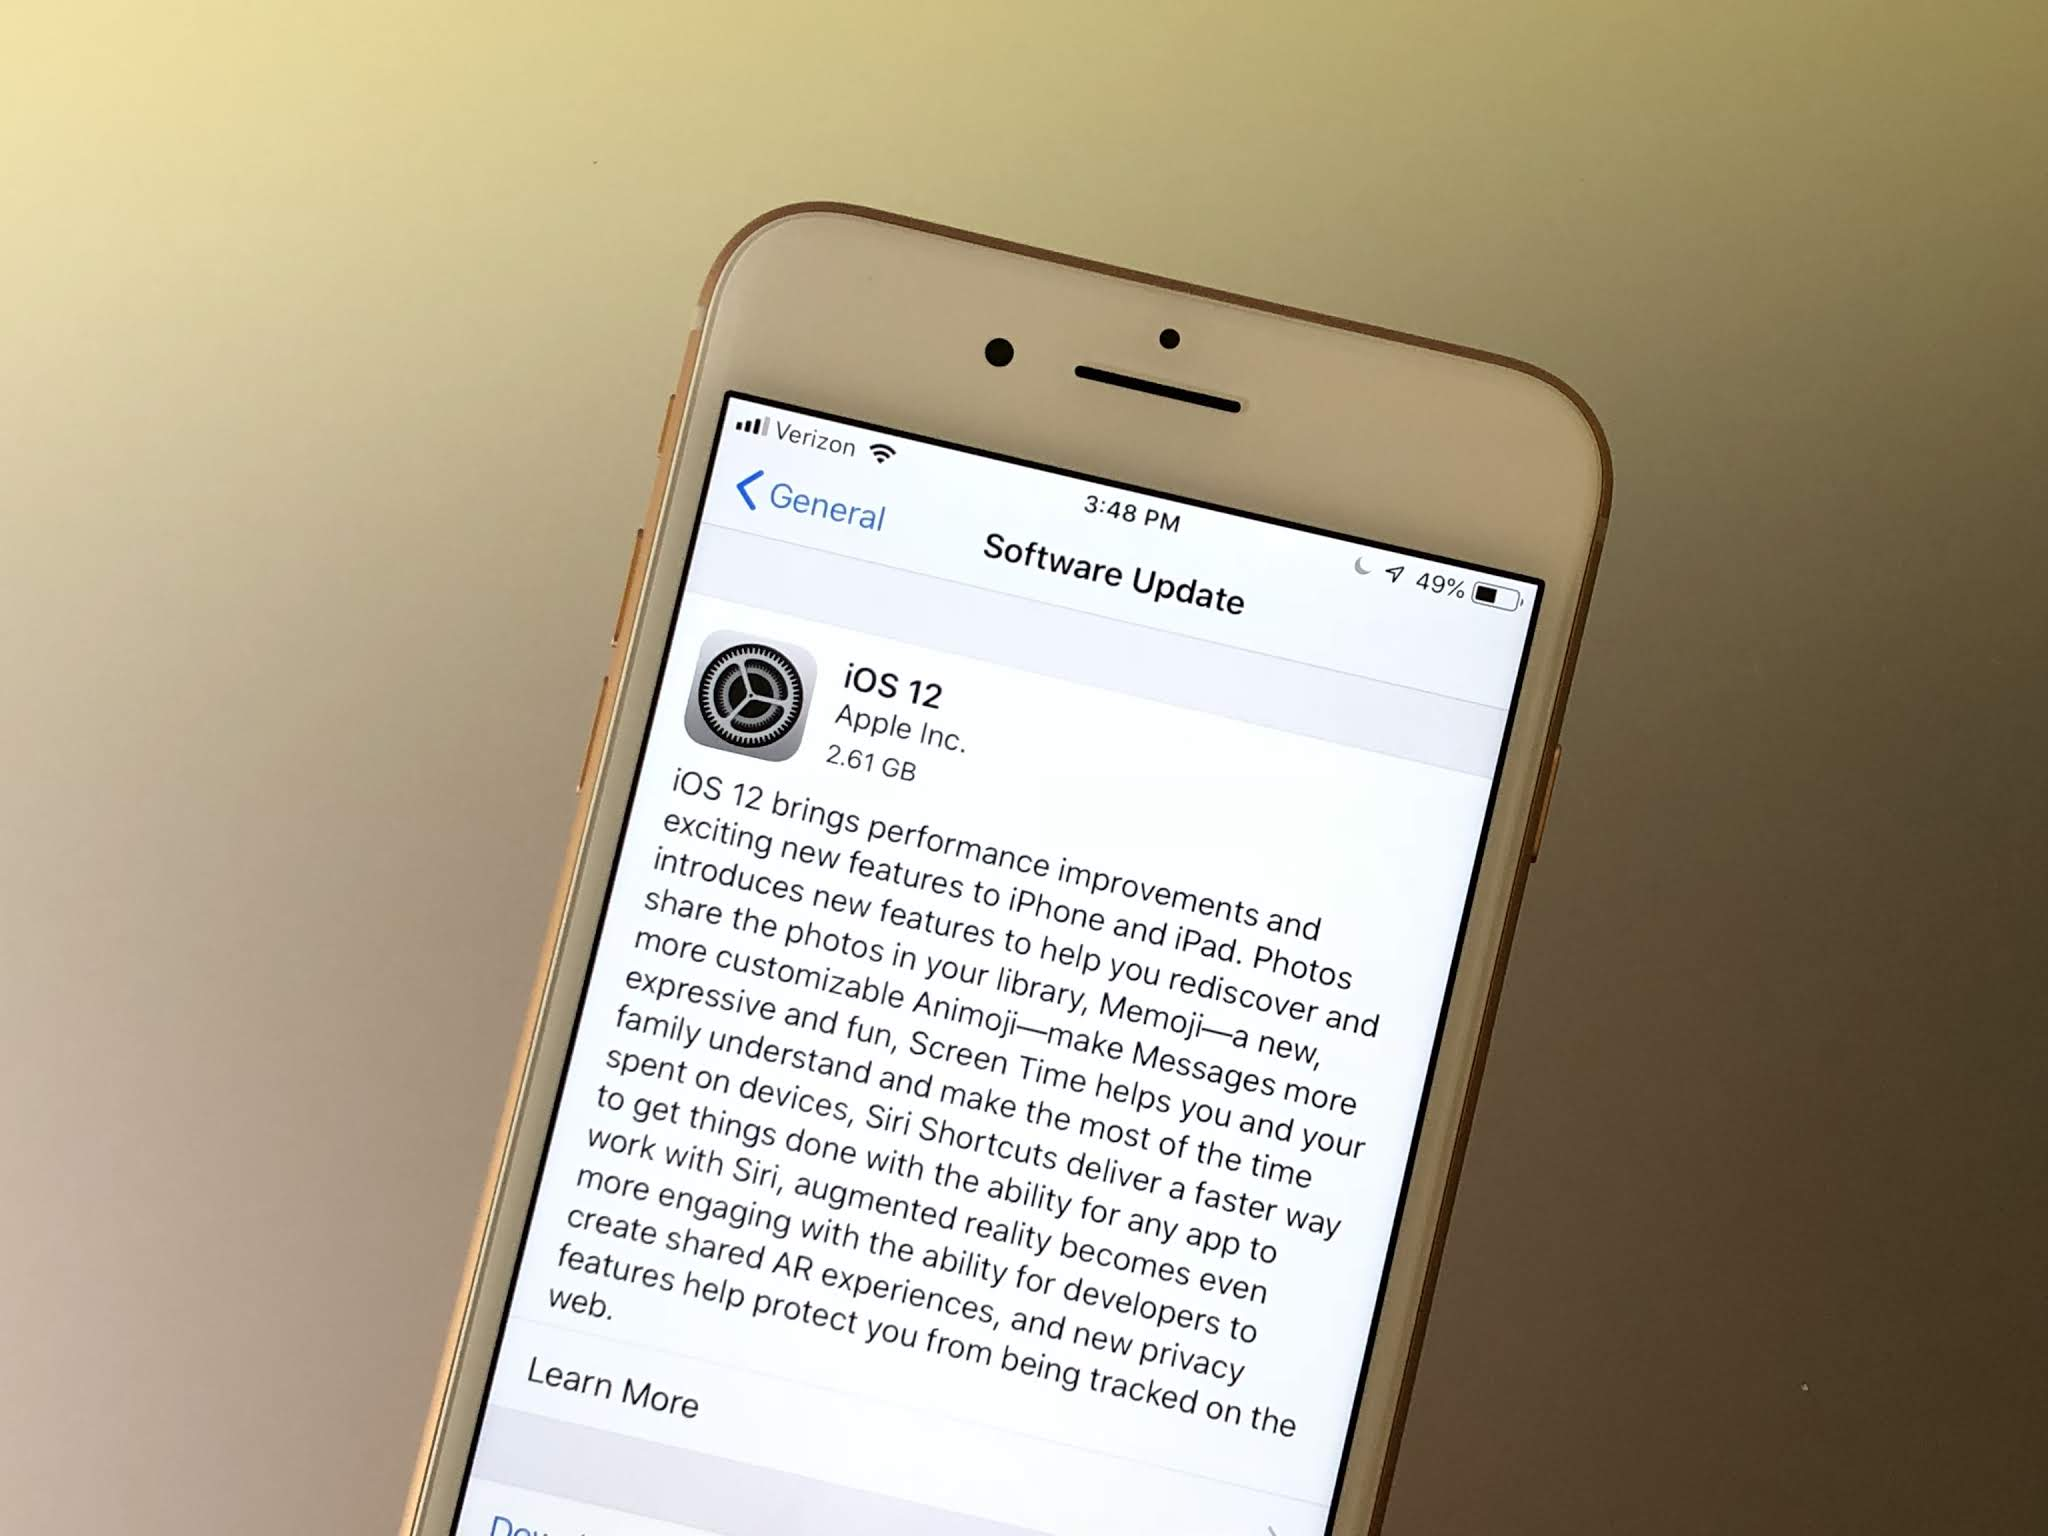 5 Things to Know About the iOS 12 Update